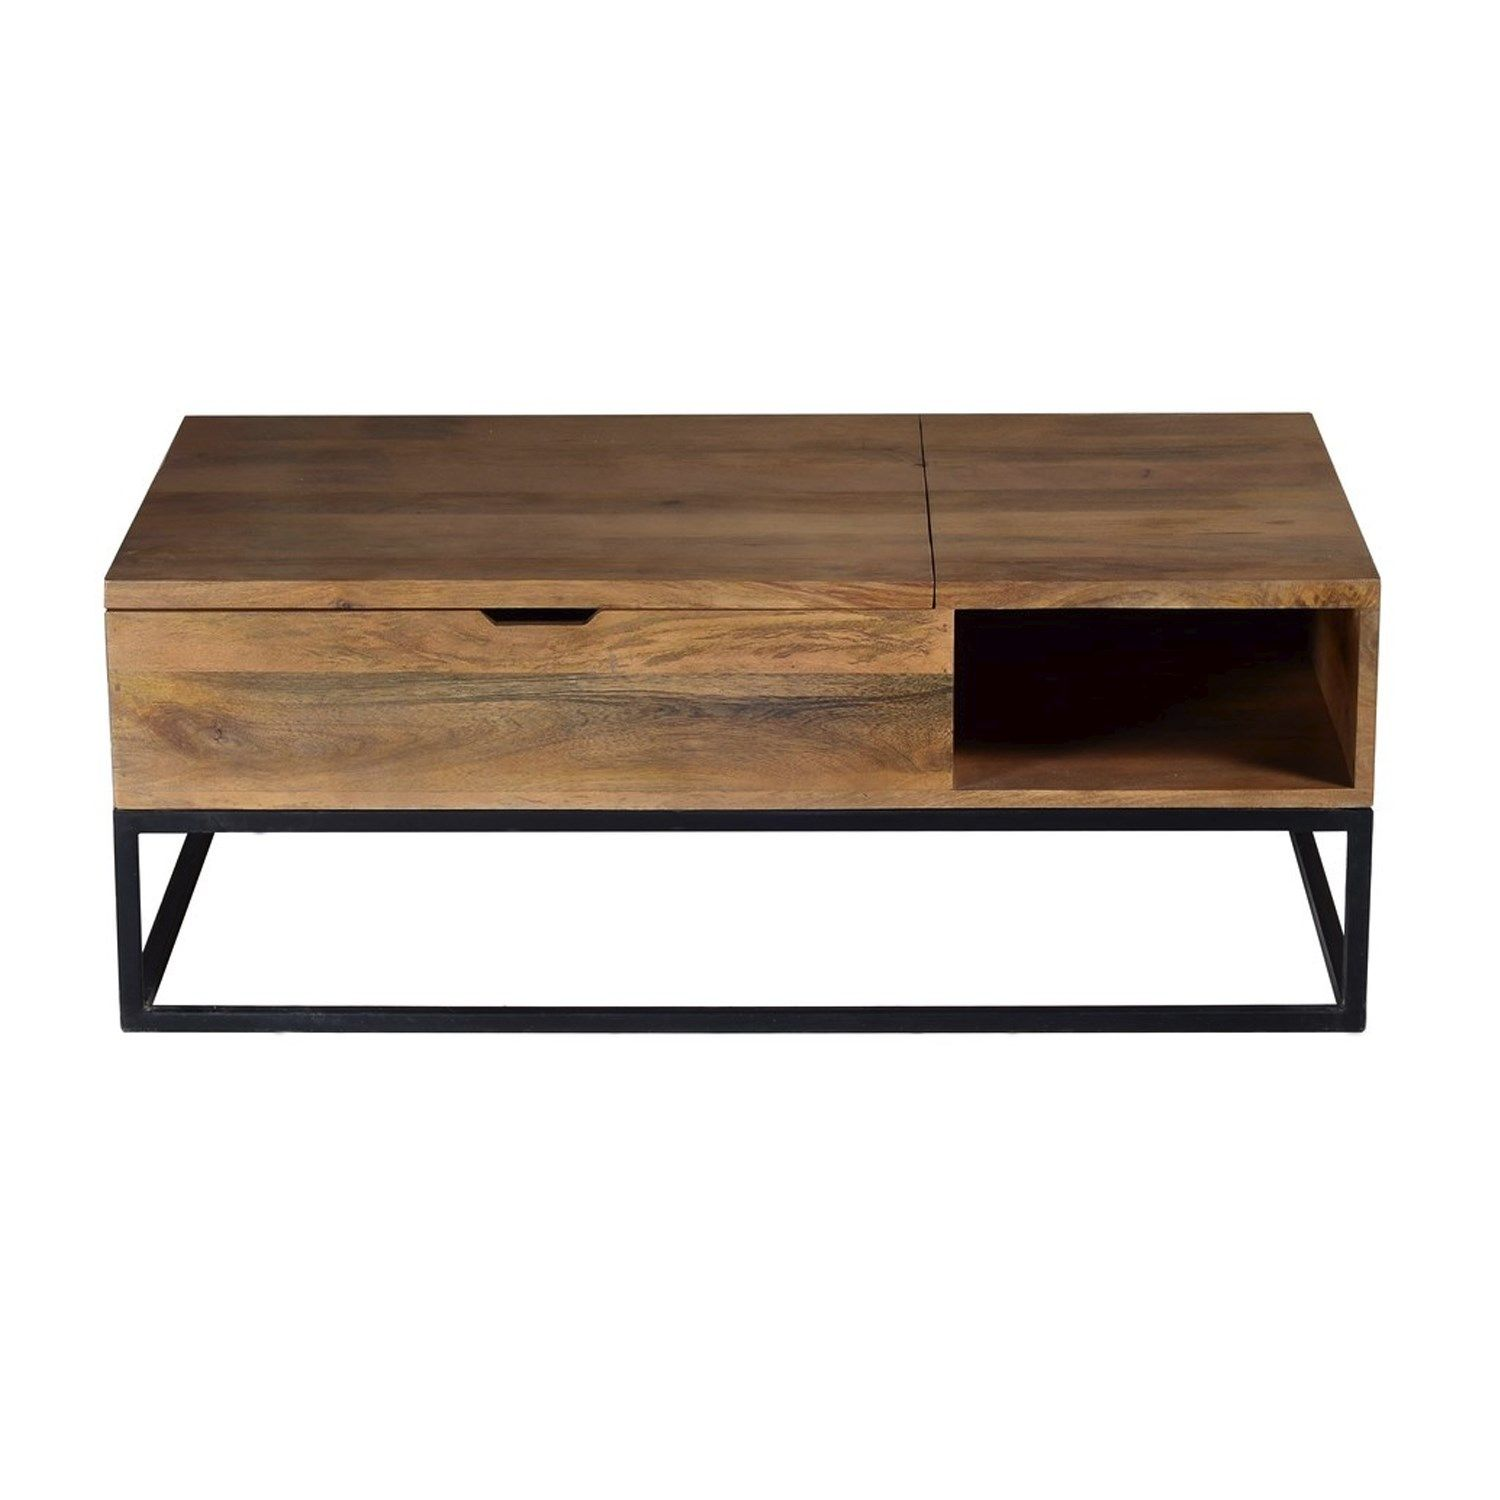 9220e256cea7f Suri Industrial Modern Coffee Table with Storage in Mango Wood   Metal  Detail